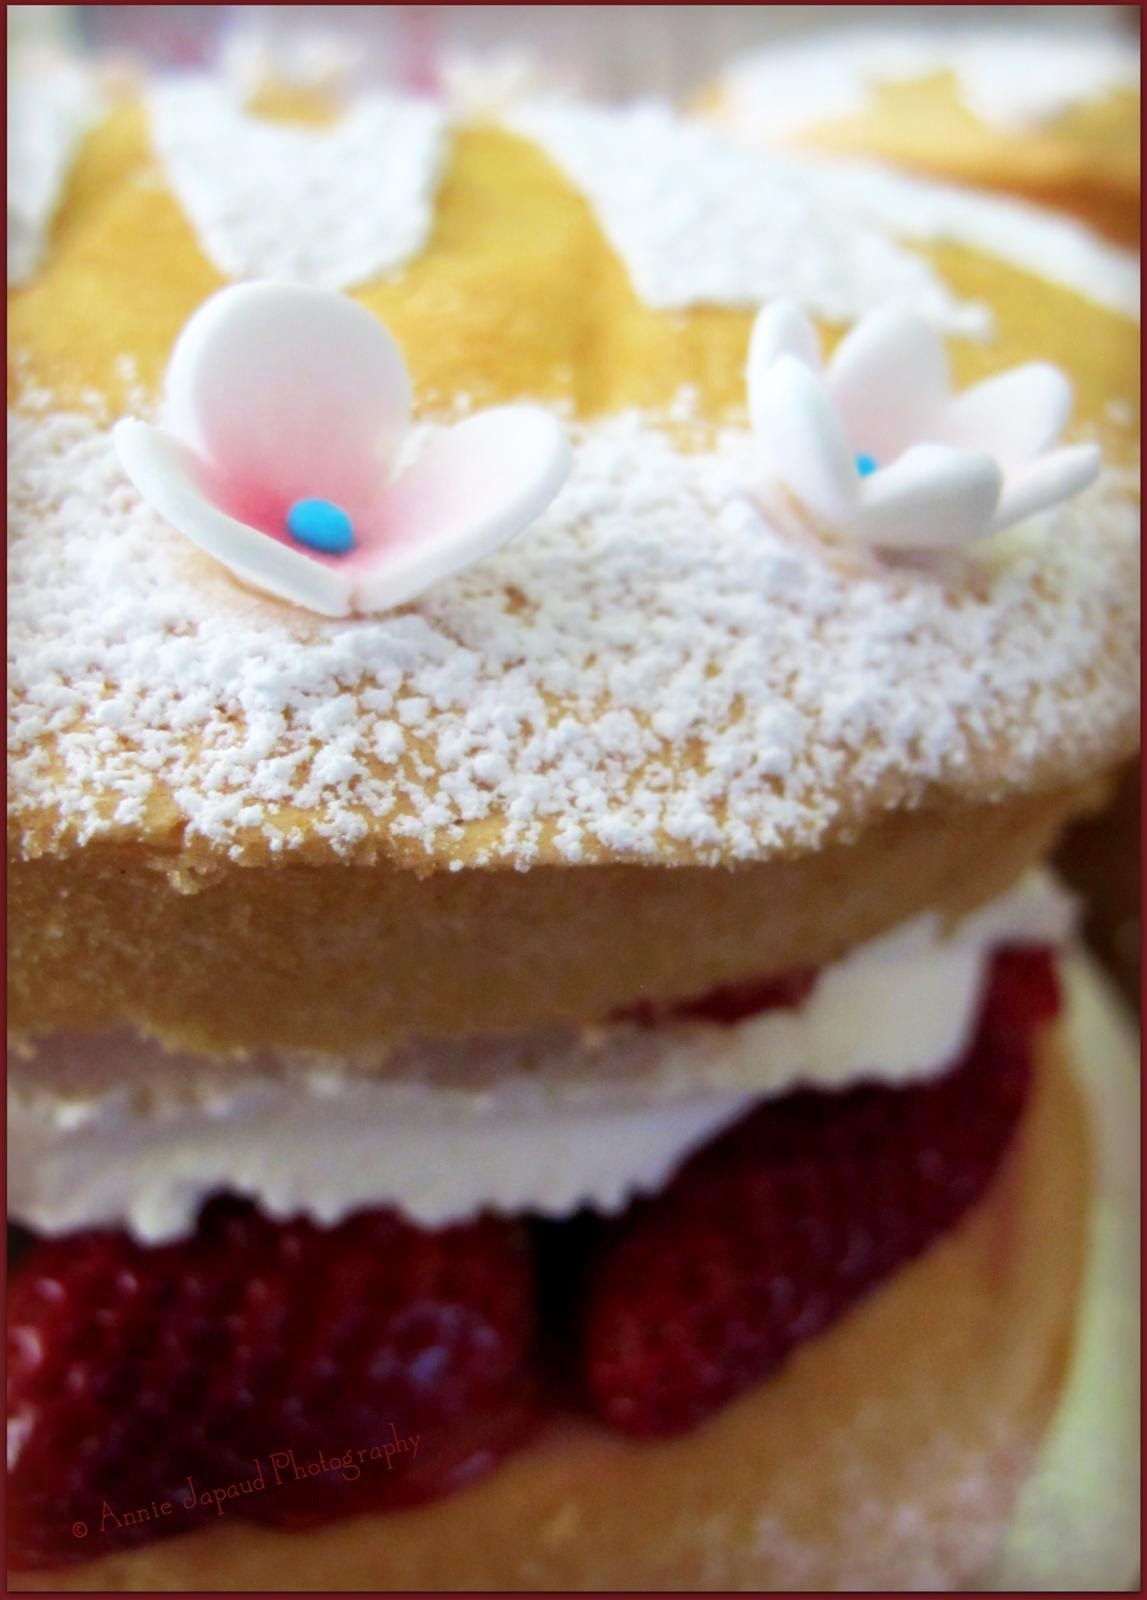 image of a cream and strawberry cake up close